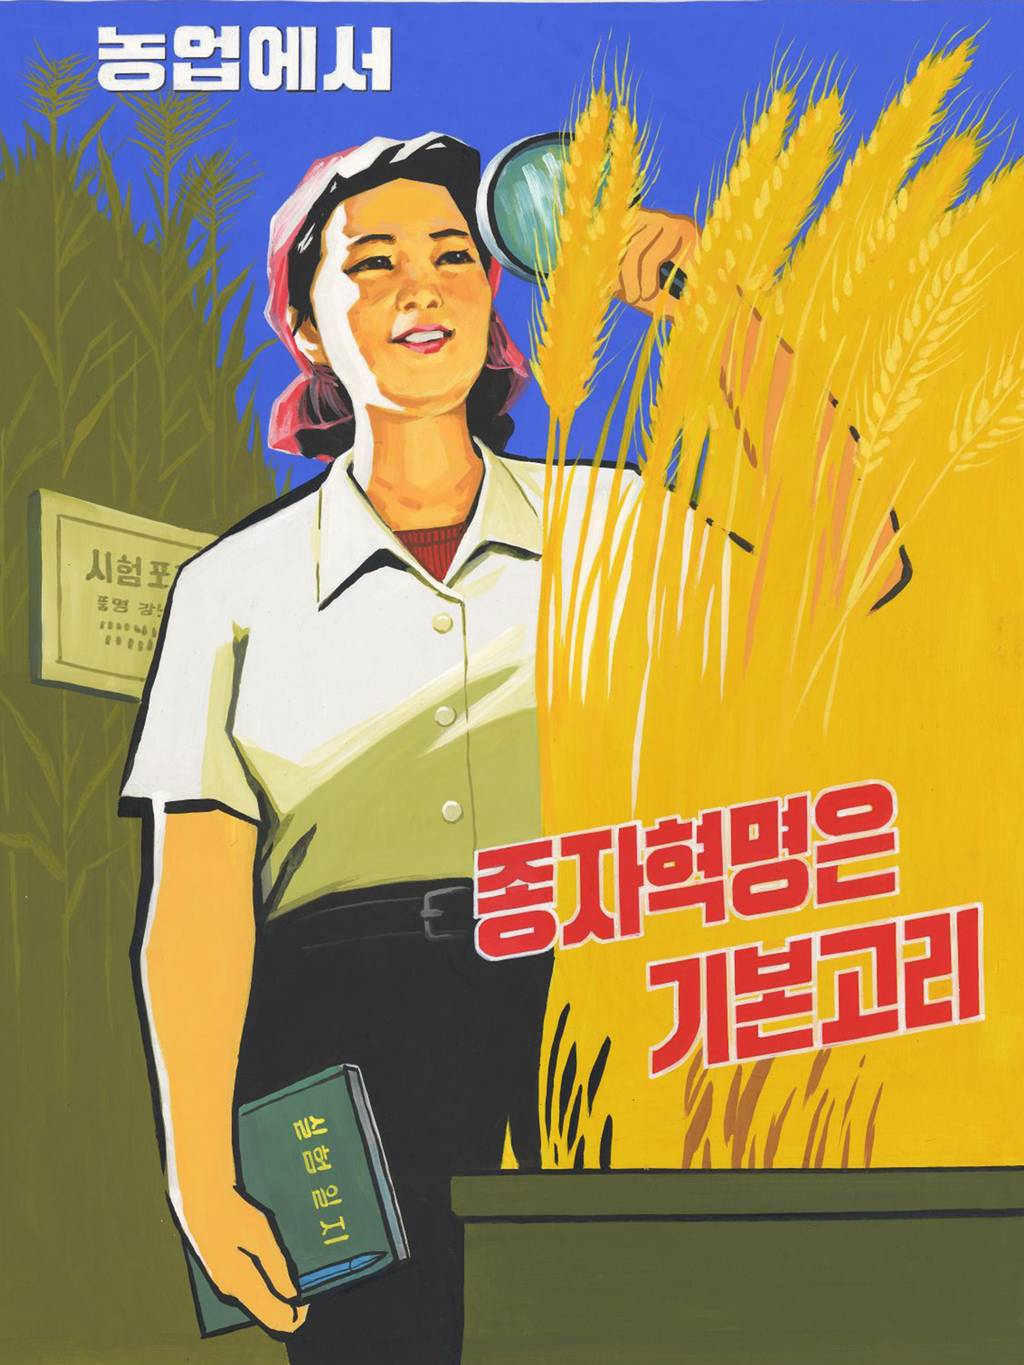 m7csQ3zKBnk poster 1.jpg Rare North Korea Propoganda Posters Go On Display For First Time